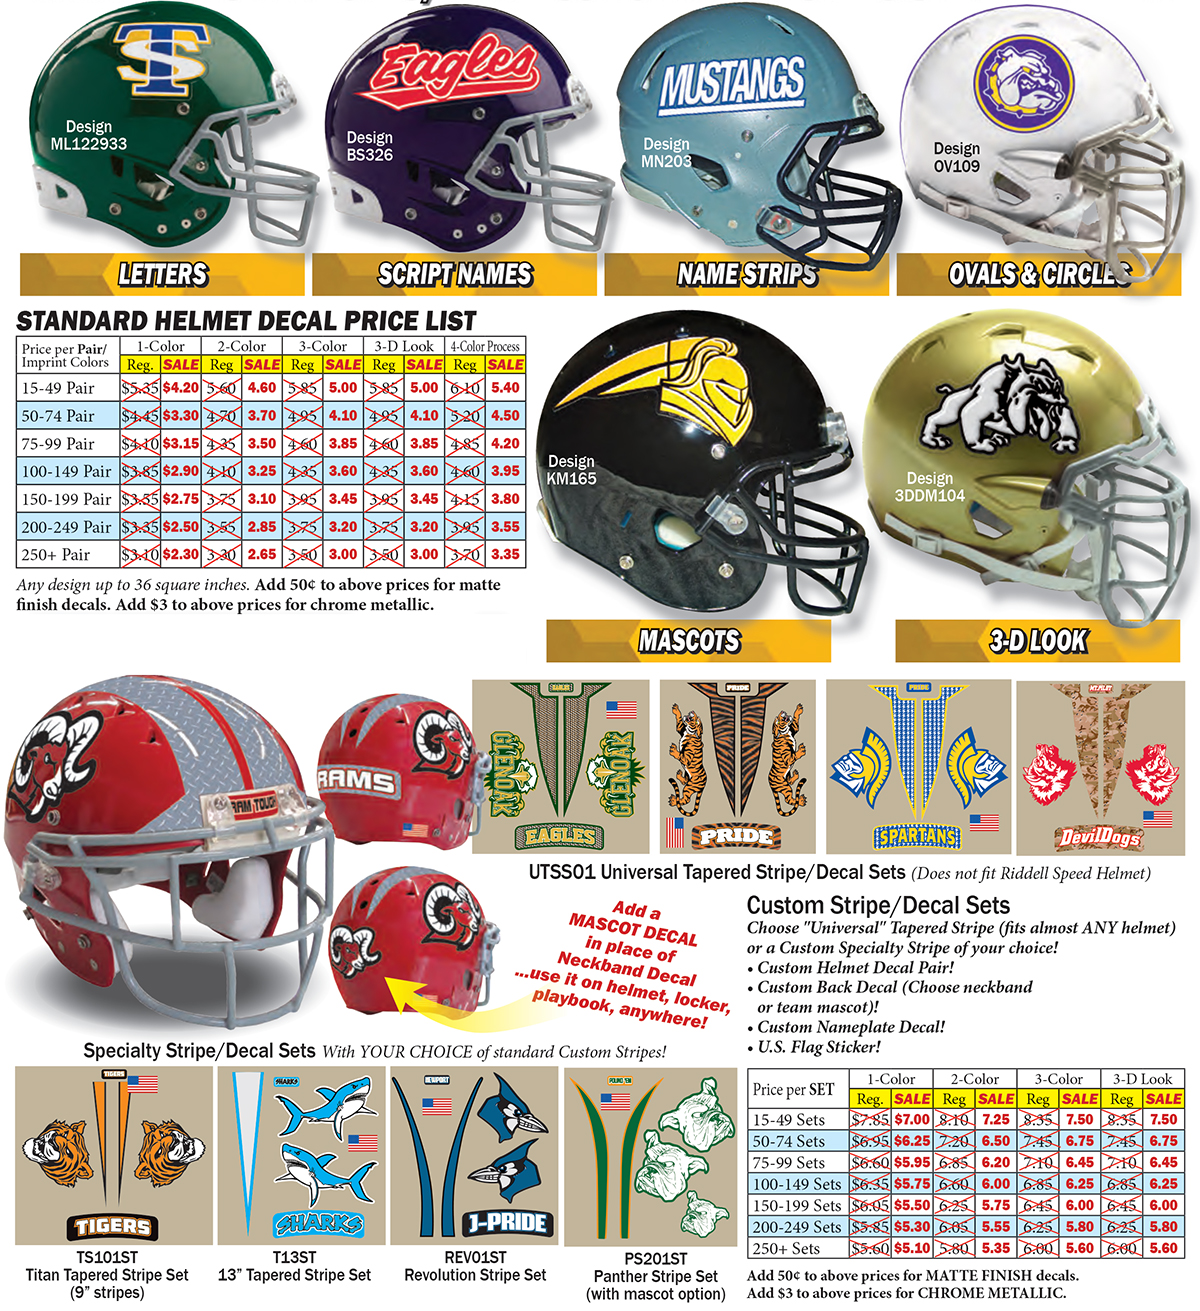 American Football Gridiron Decals 3